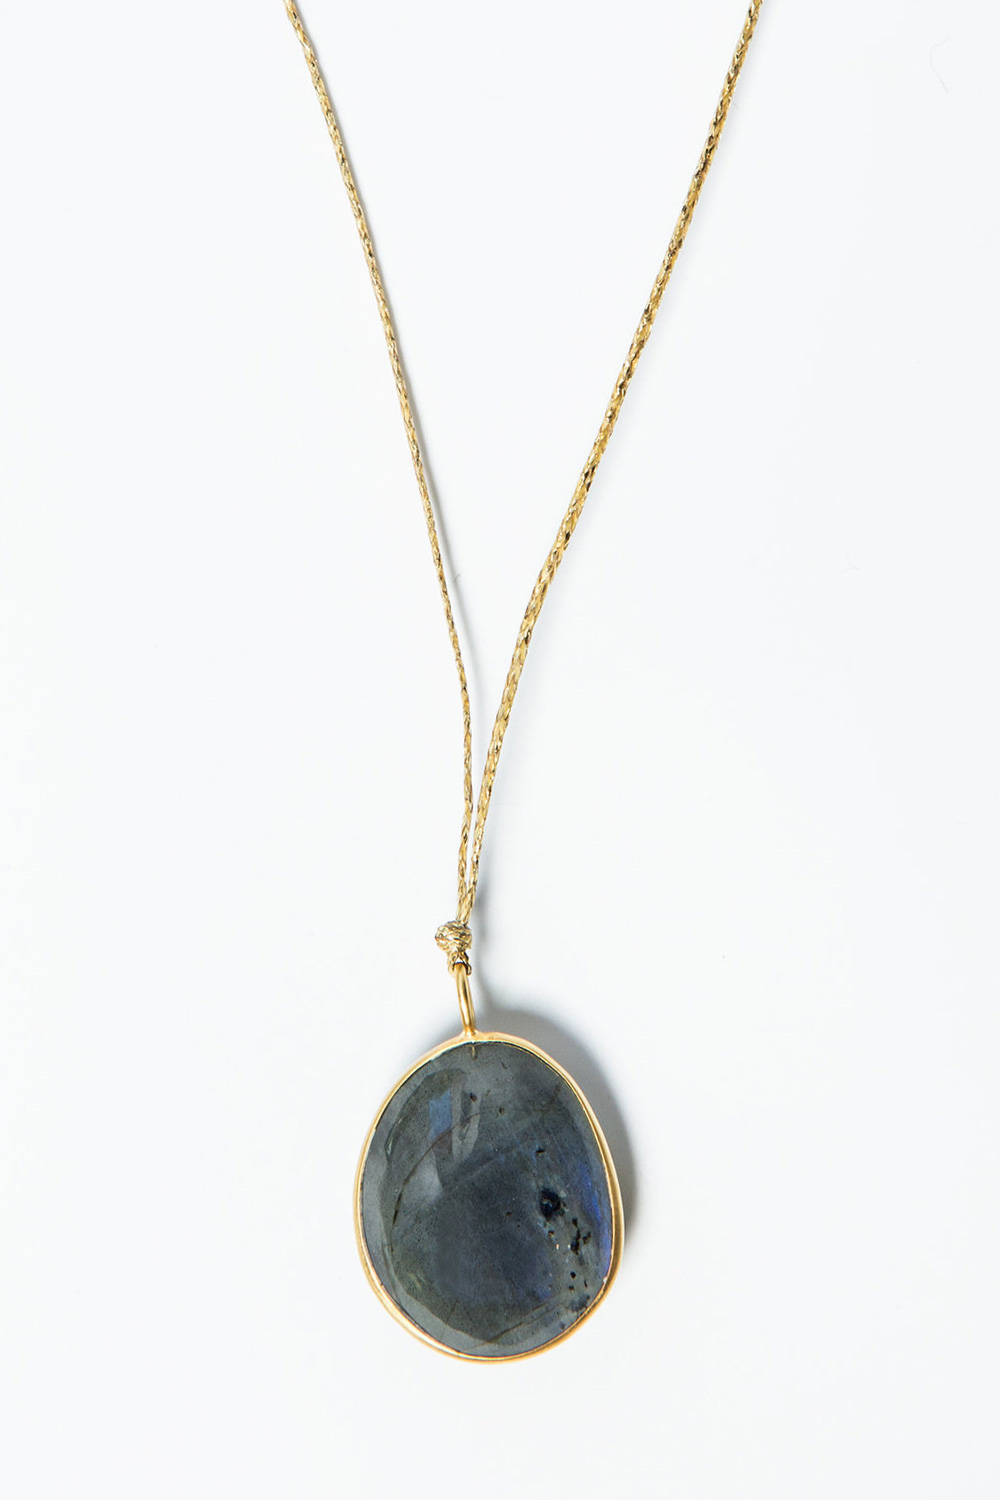 Pippa Small 18K Gold and Labradorite Pendant  $850